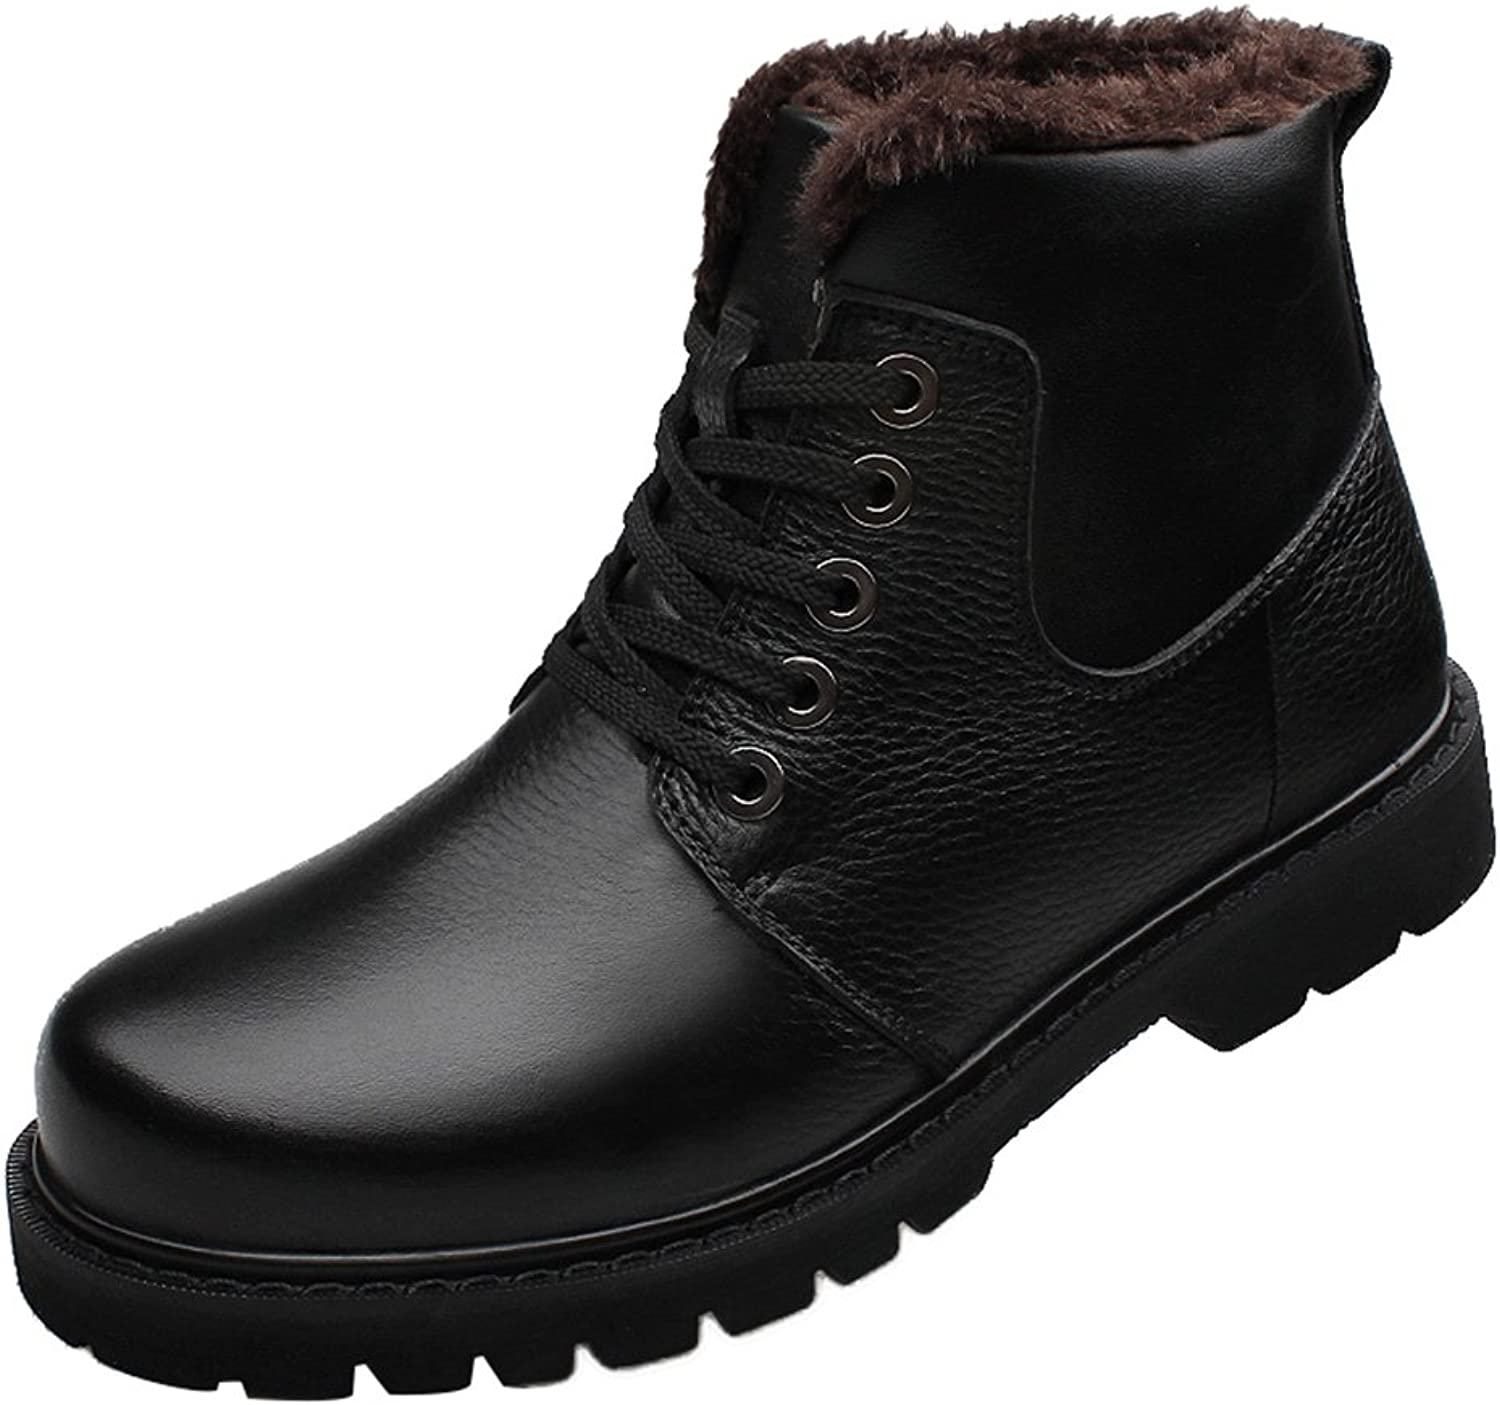 Salabobo QYY-LD-0268 Mens New Fashion Casual Leather High Top Lace up Plus Velvet Warm Wool Working Boots